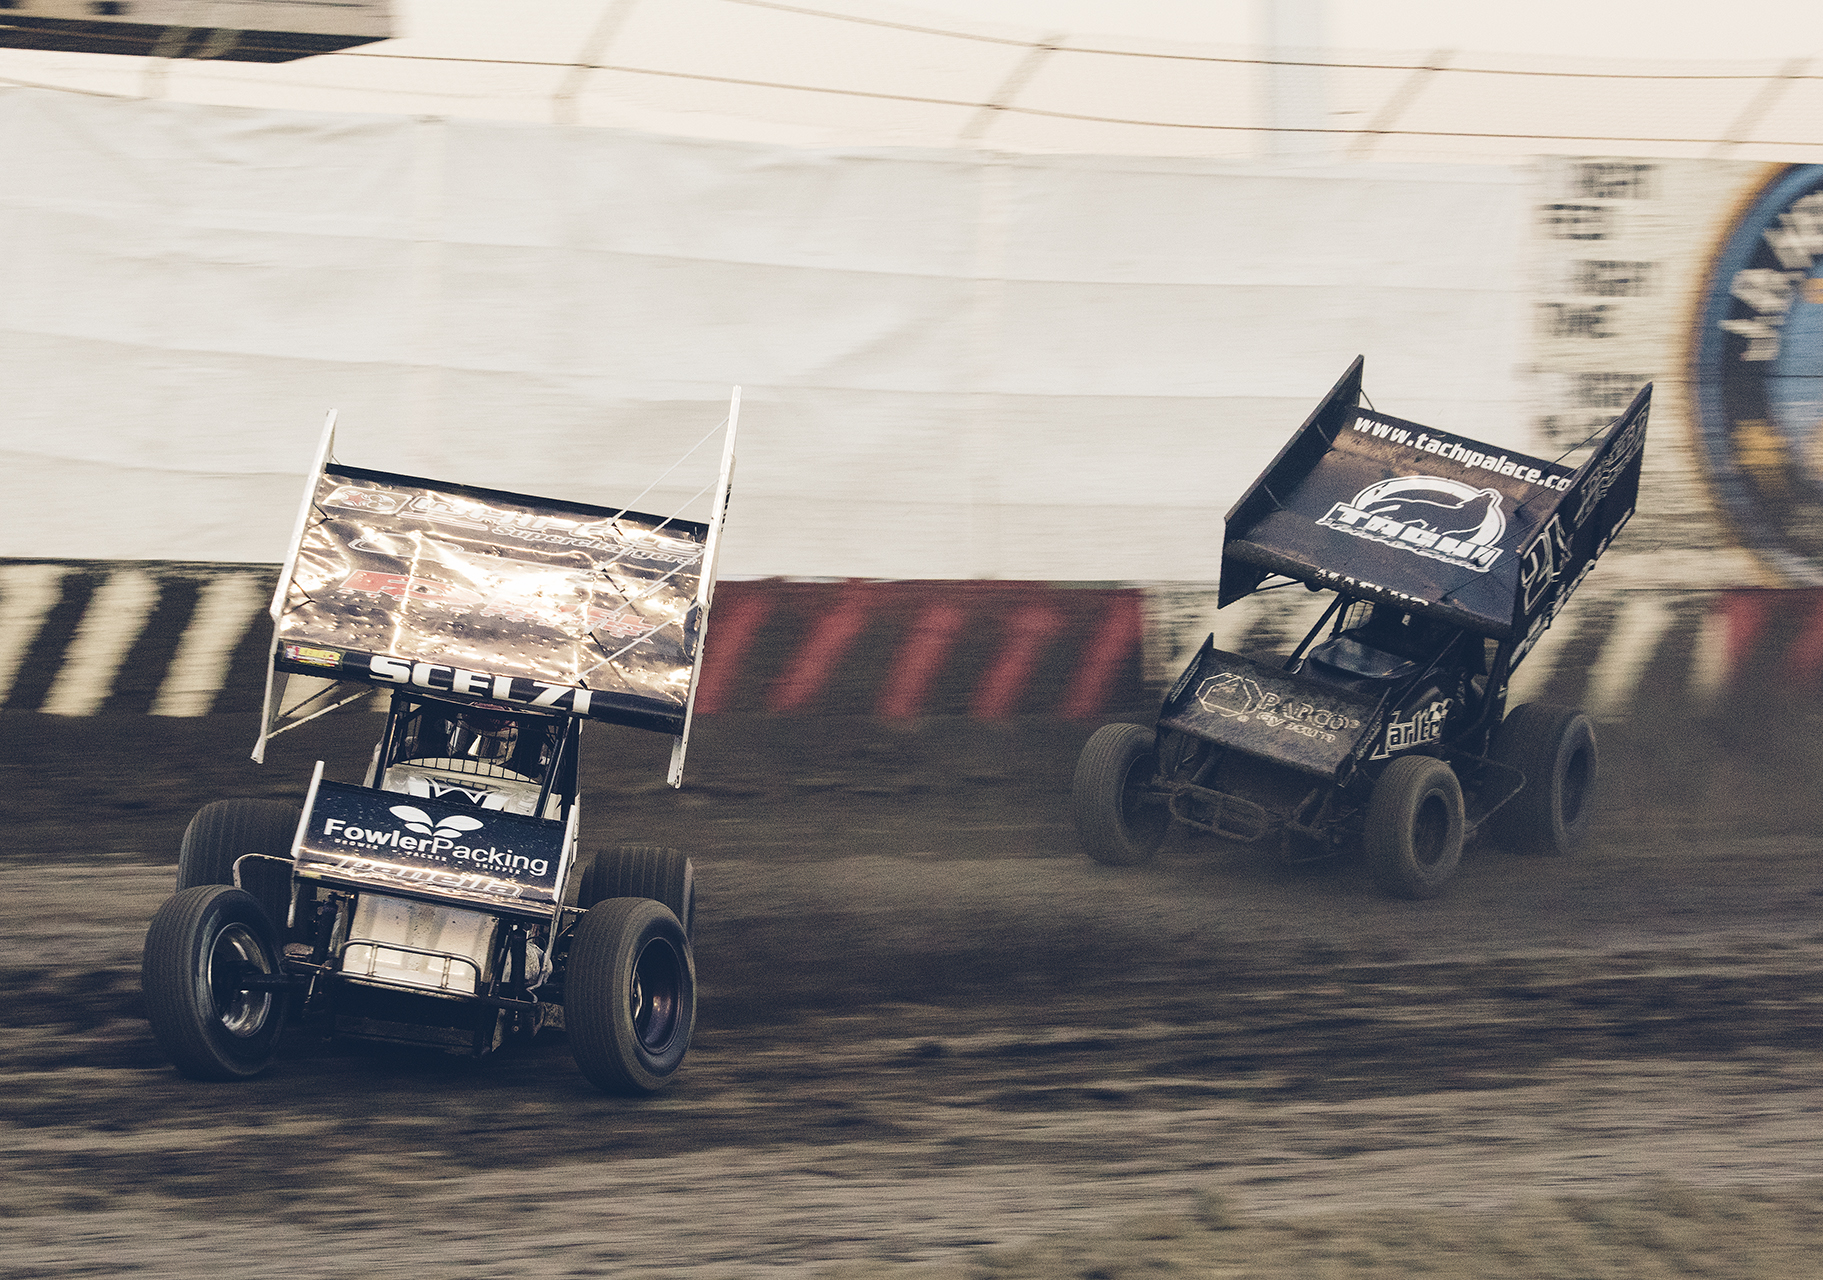 Dominic Scelzi leads Carson Macedo into turn three at Thunderbowl Raceway during a King of the West Series heat race, 2015.